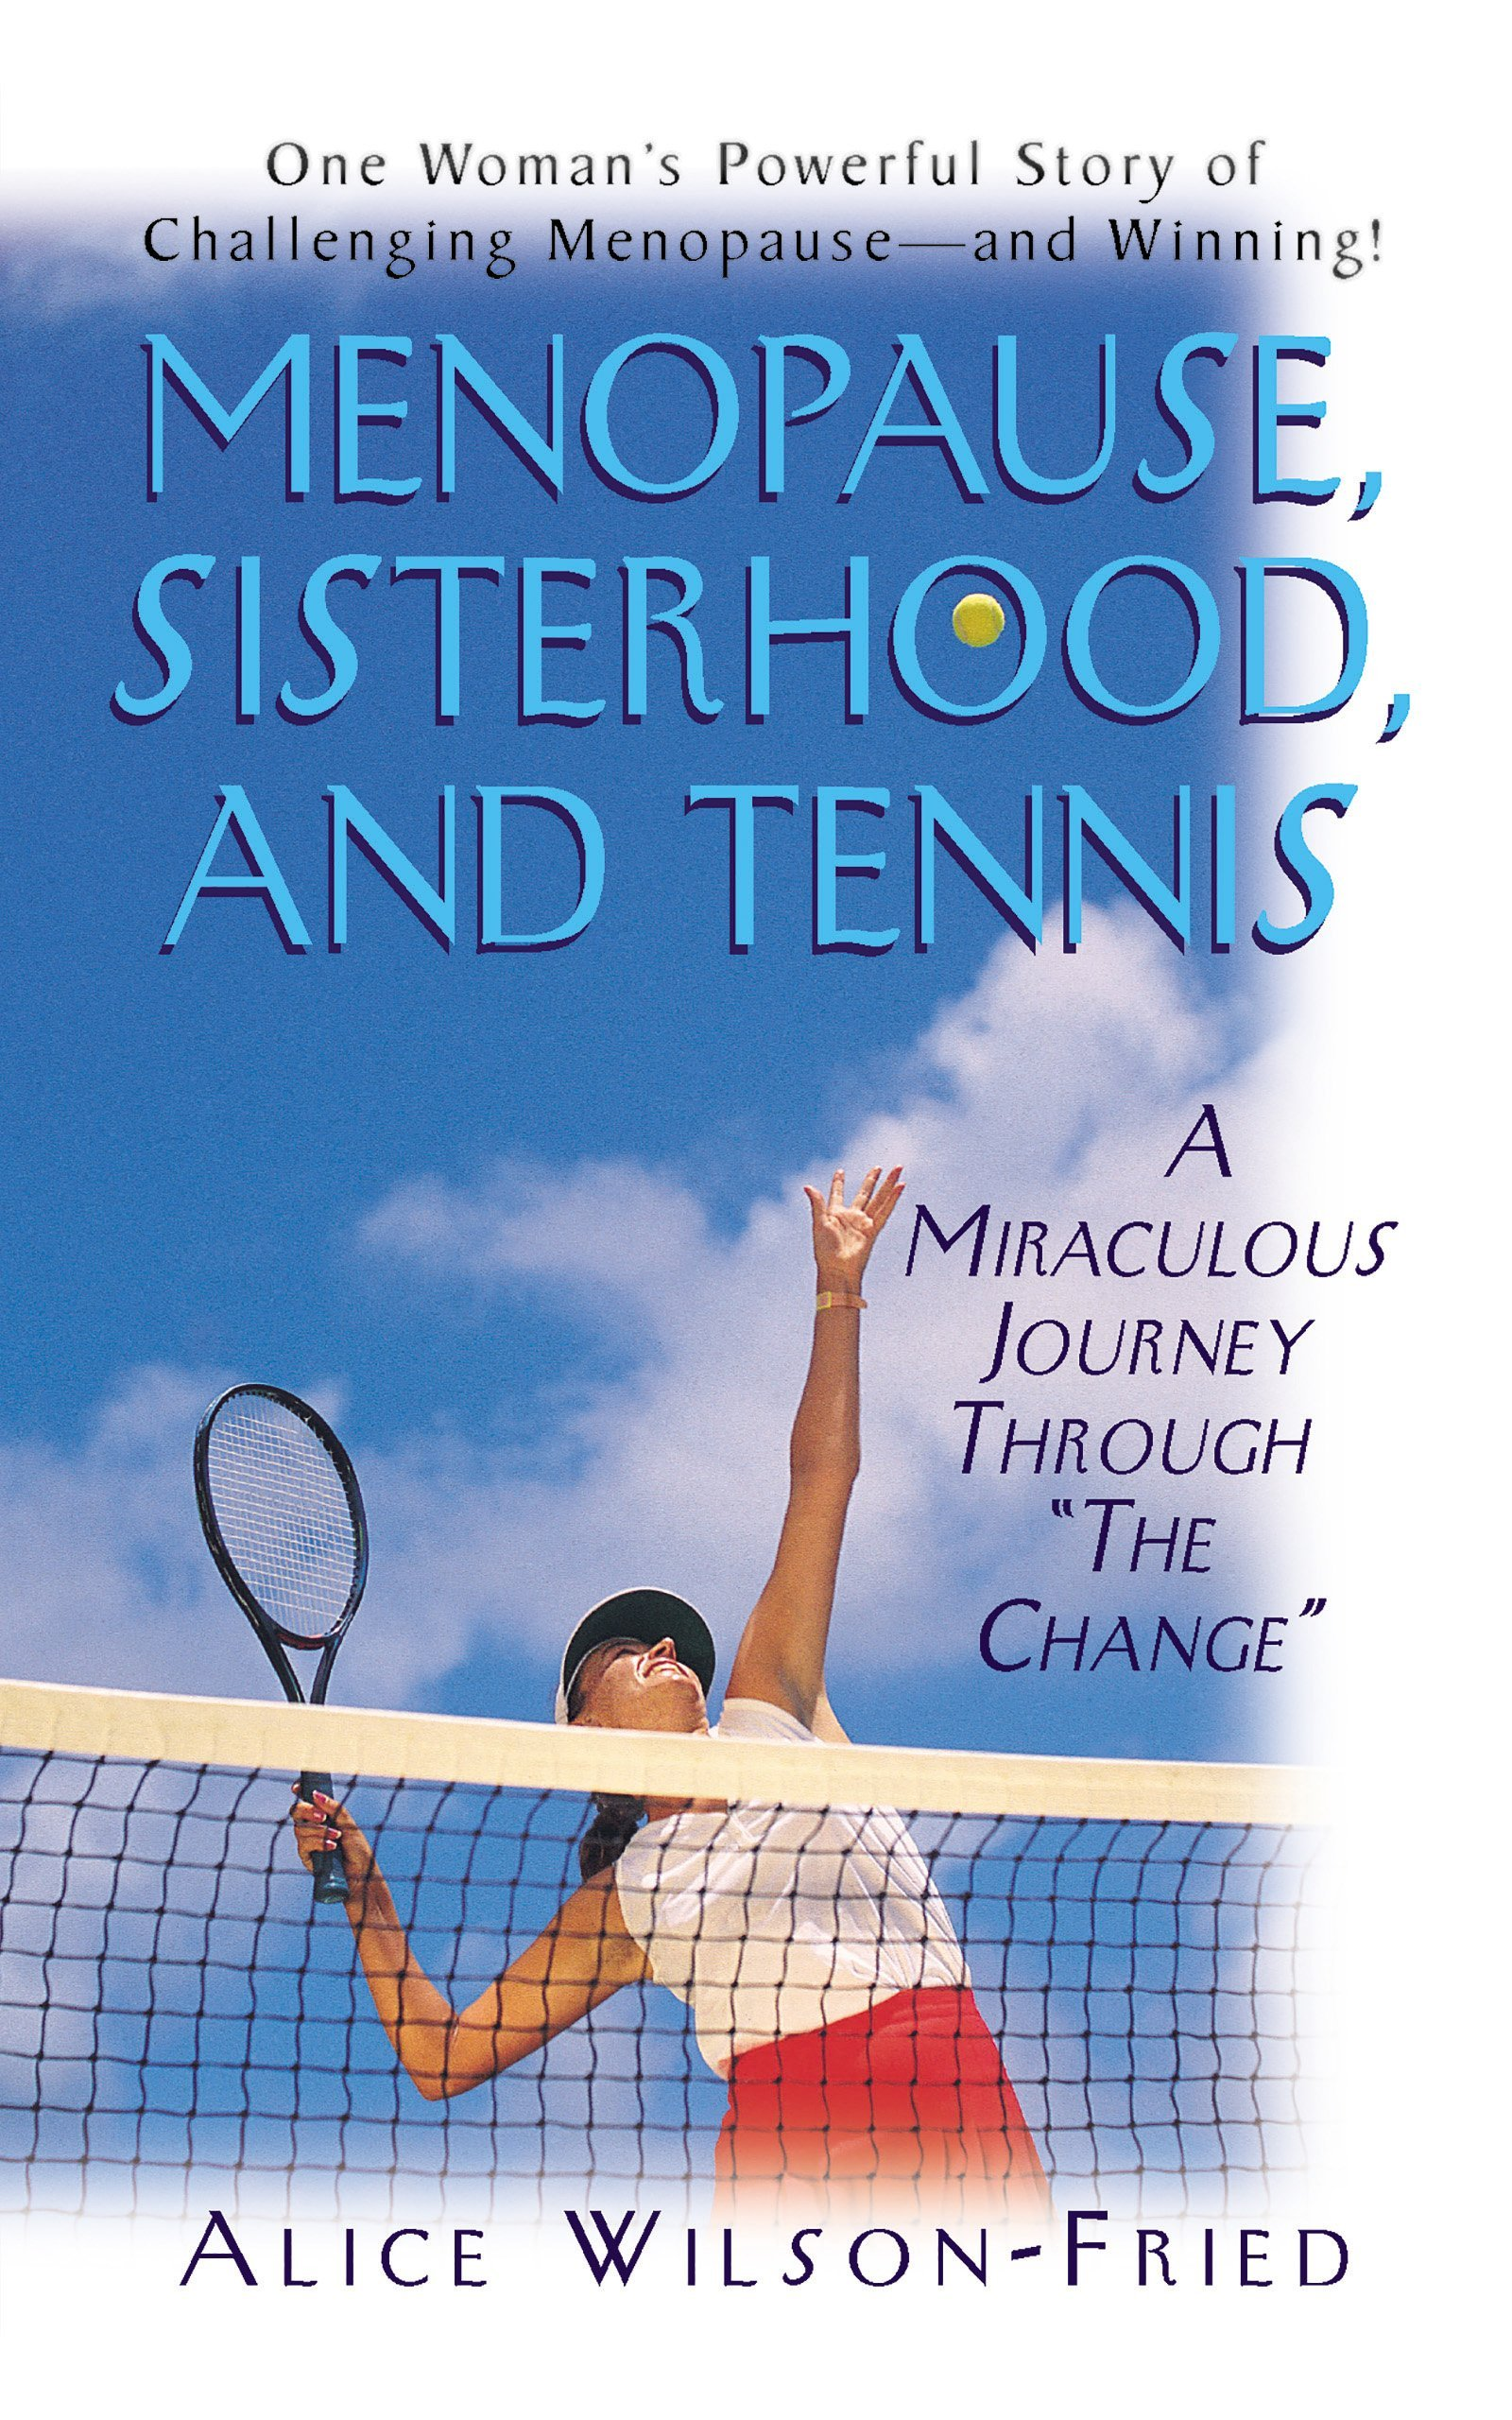 "Menopause, Sisterhood, and Tennis: A Miraculous Journey Through ""The Change"" PDF"